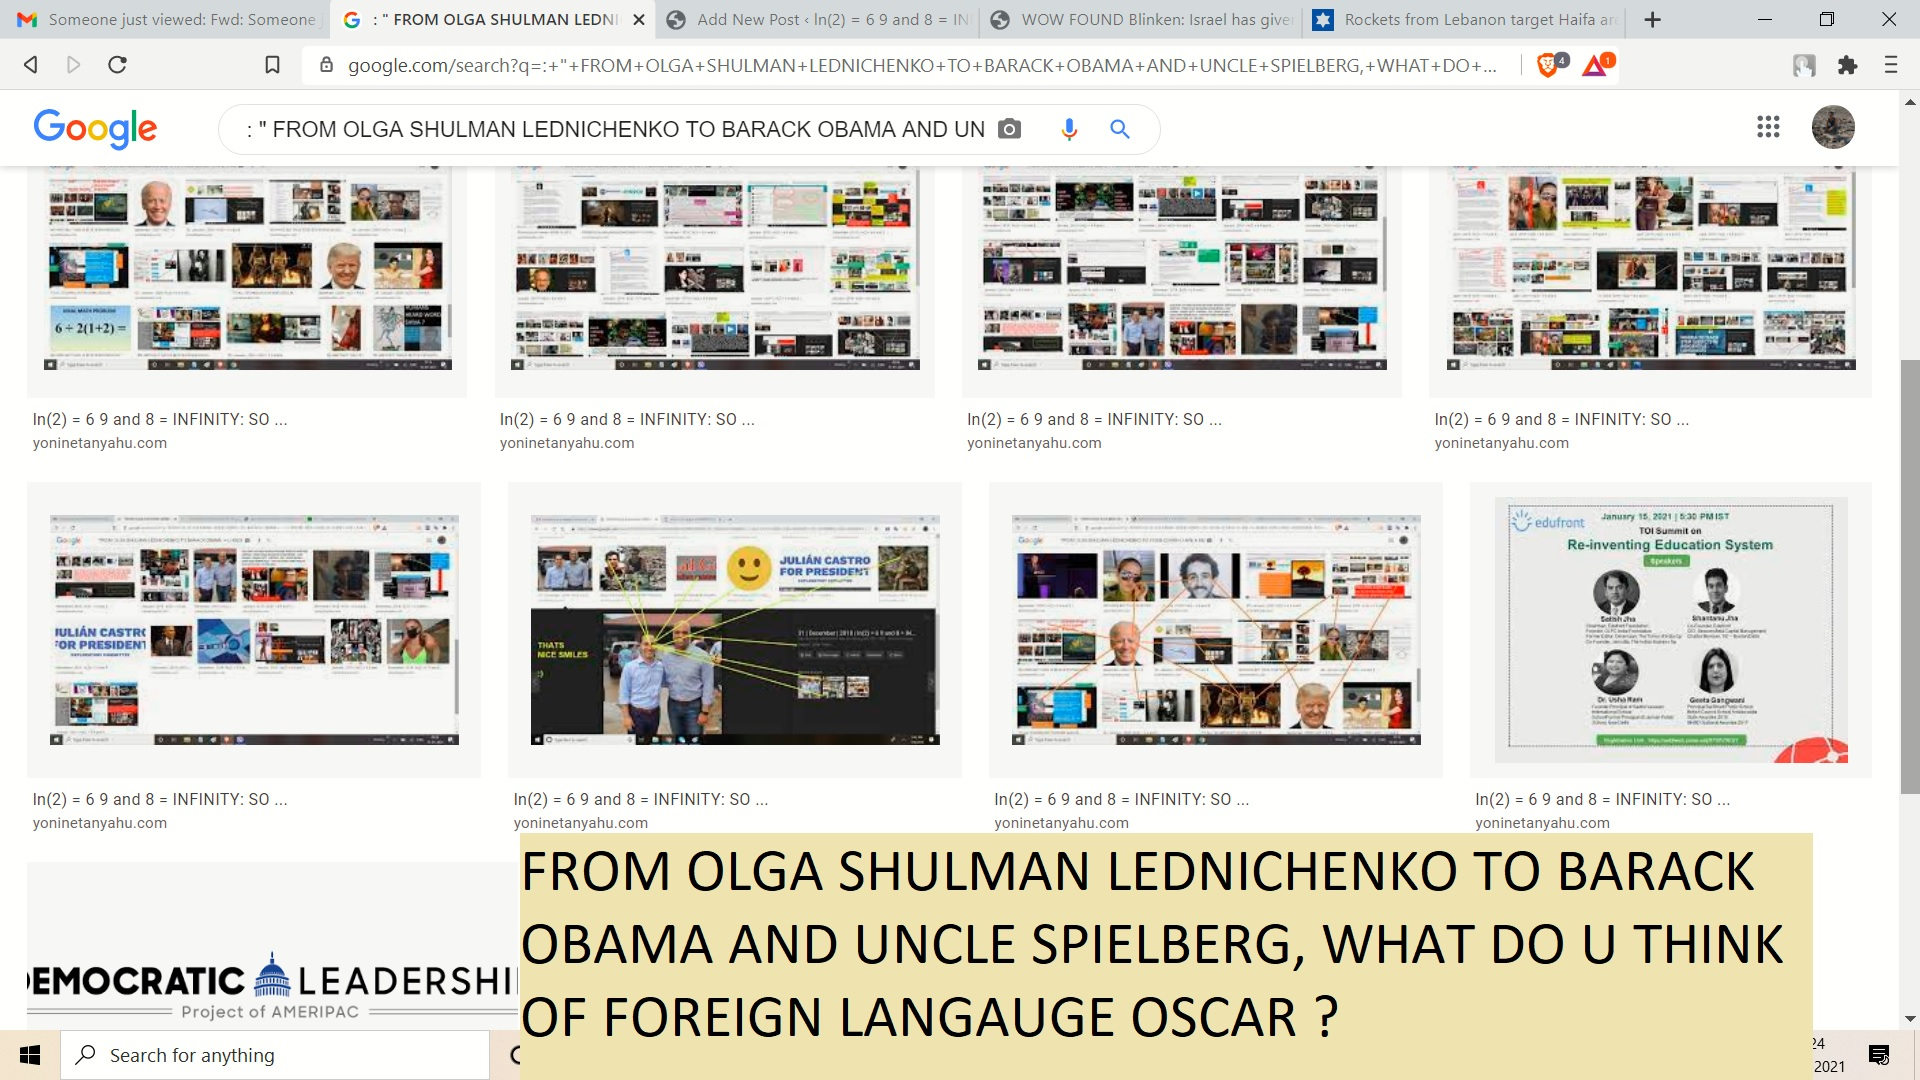 SO MRS SPEILEBRG AND OBAMA -WHAT OD U THINSK OF FOREIGN LANGUAGE OSCRA